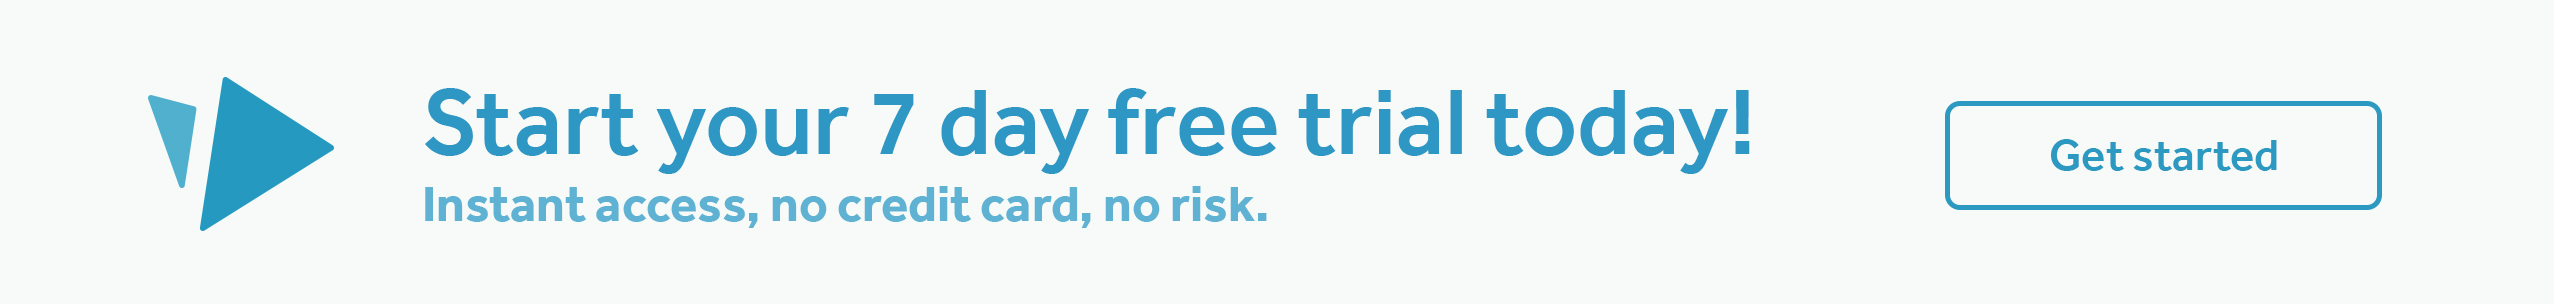 7 day FREE VideoScribe trial